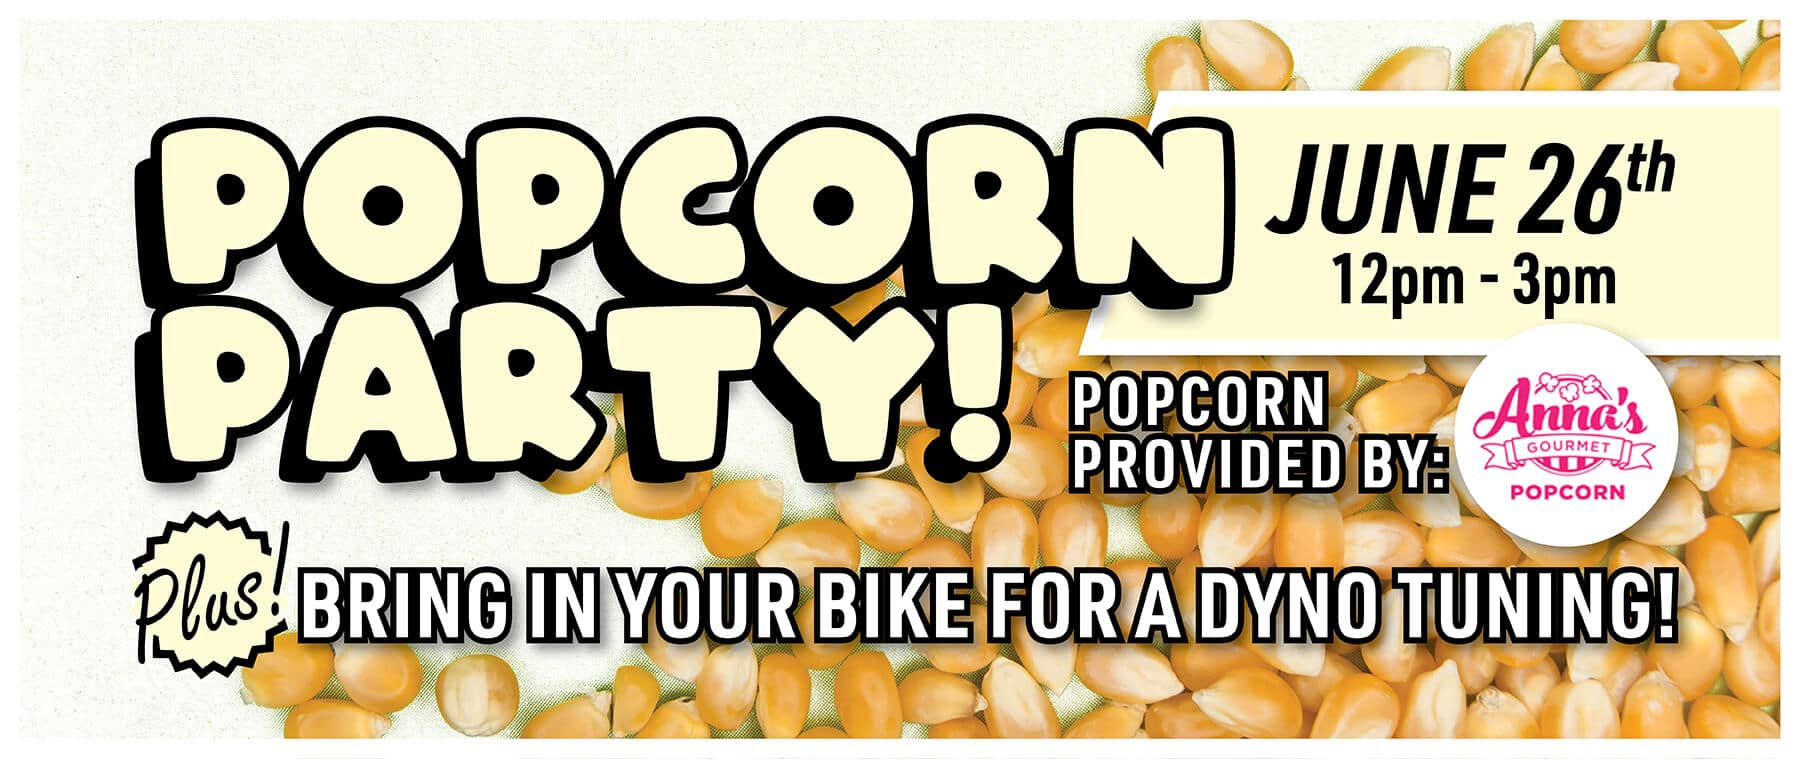 1800x760_OH01_PopcornParty_6-26-21